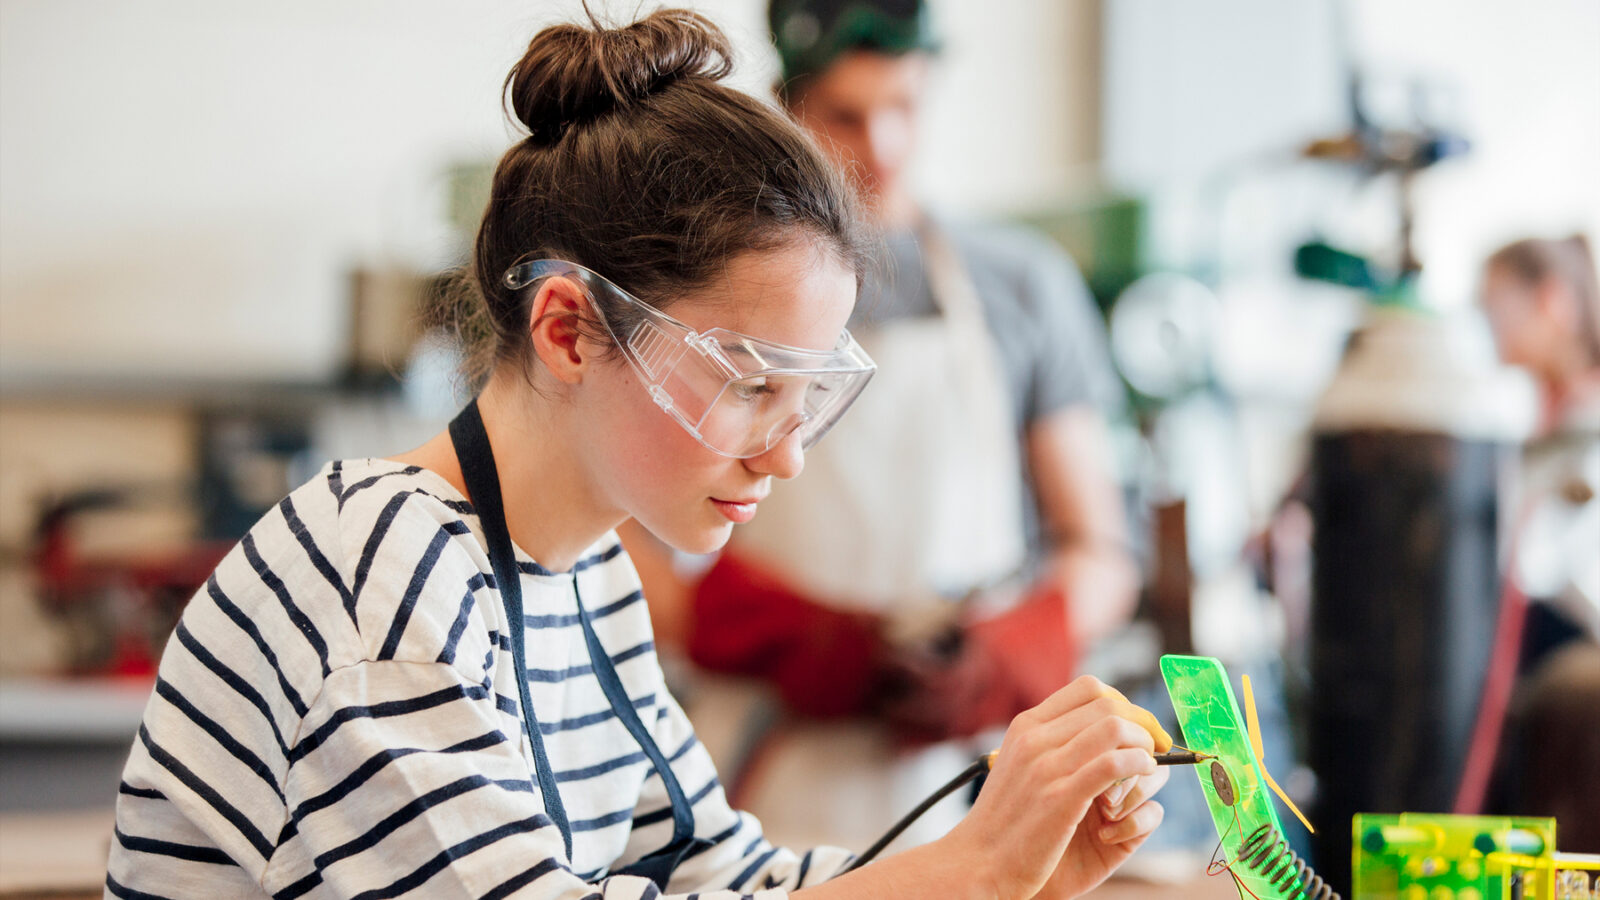 Girl wearing safety glasses doing soldering